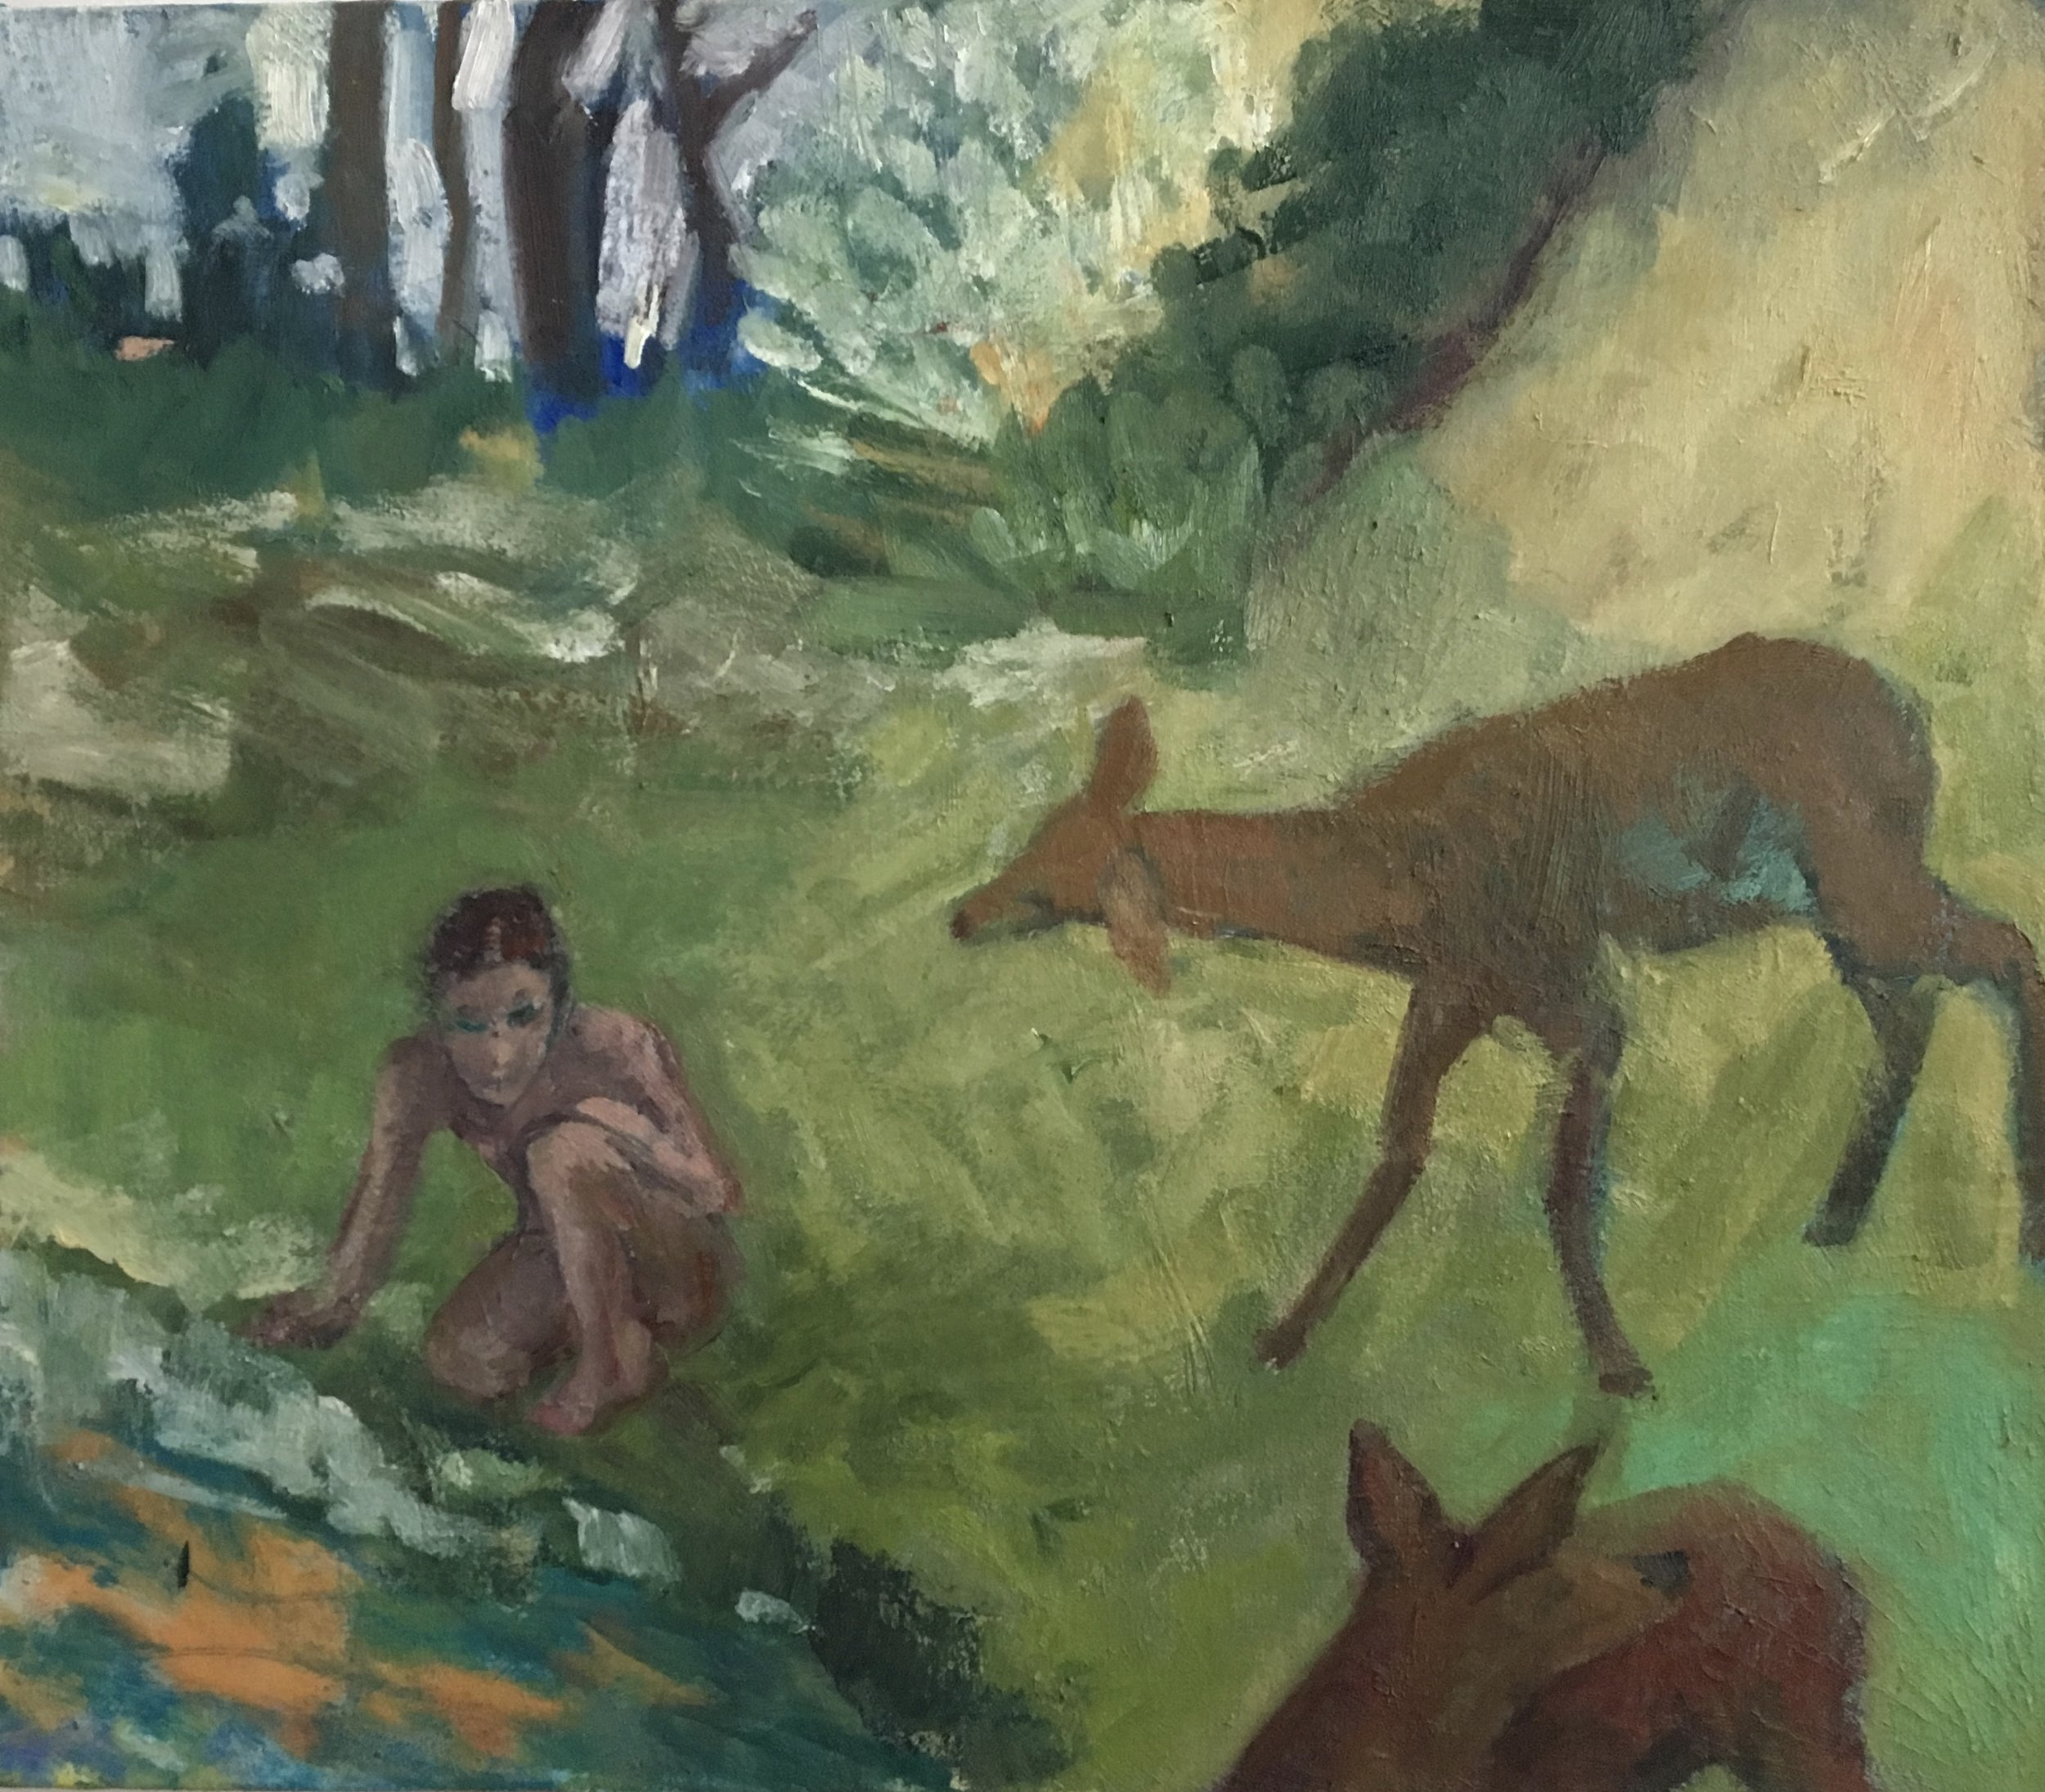 Two Deer and a Figure, 2016